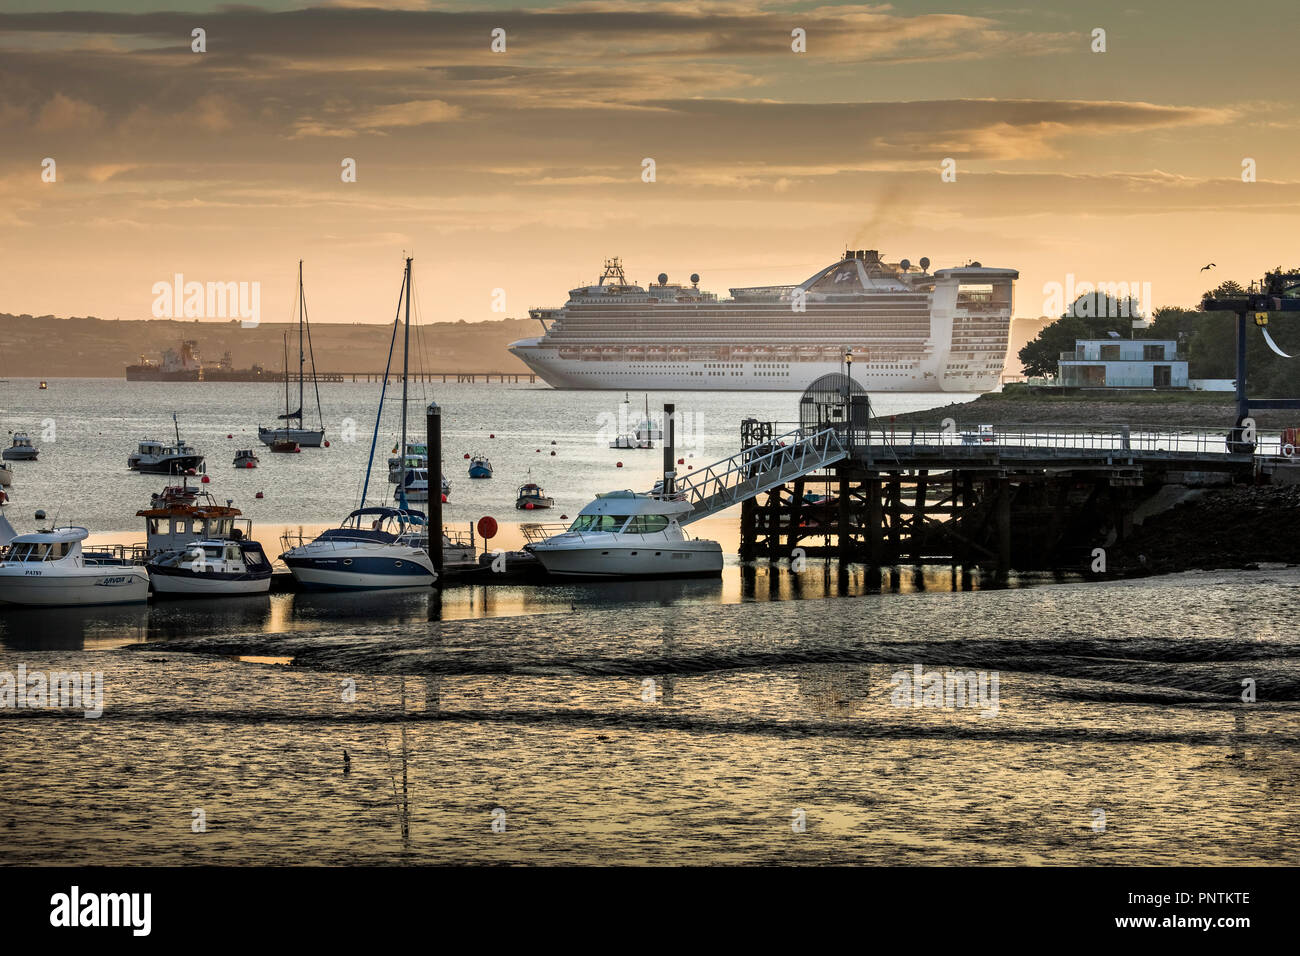 Crosshaven, Cork, Ireland. 26th August, 2016. Cruise Liner, Caribbean Princess passes the village of Crosshaven early in the  morning on her way  to C - Stock Image